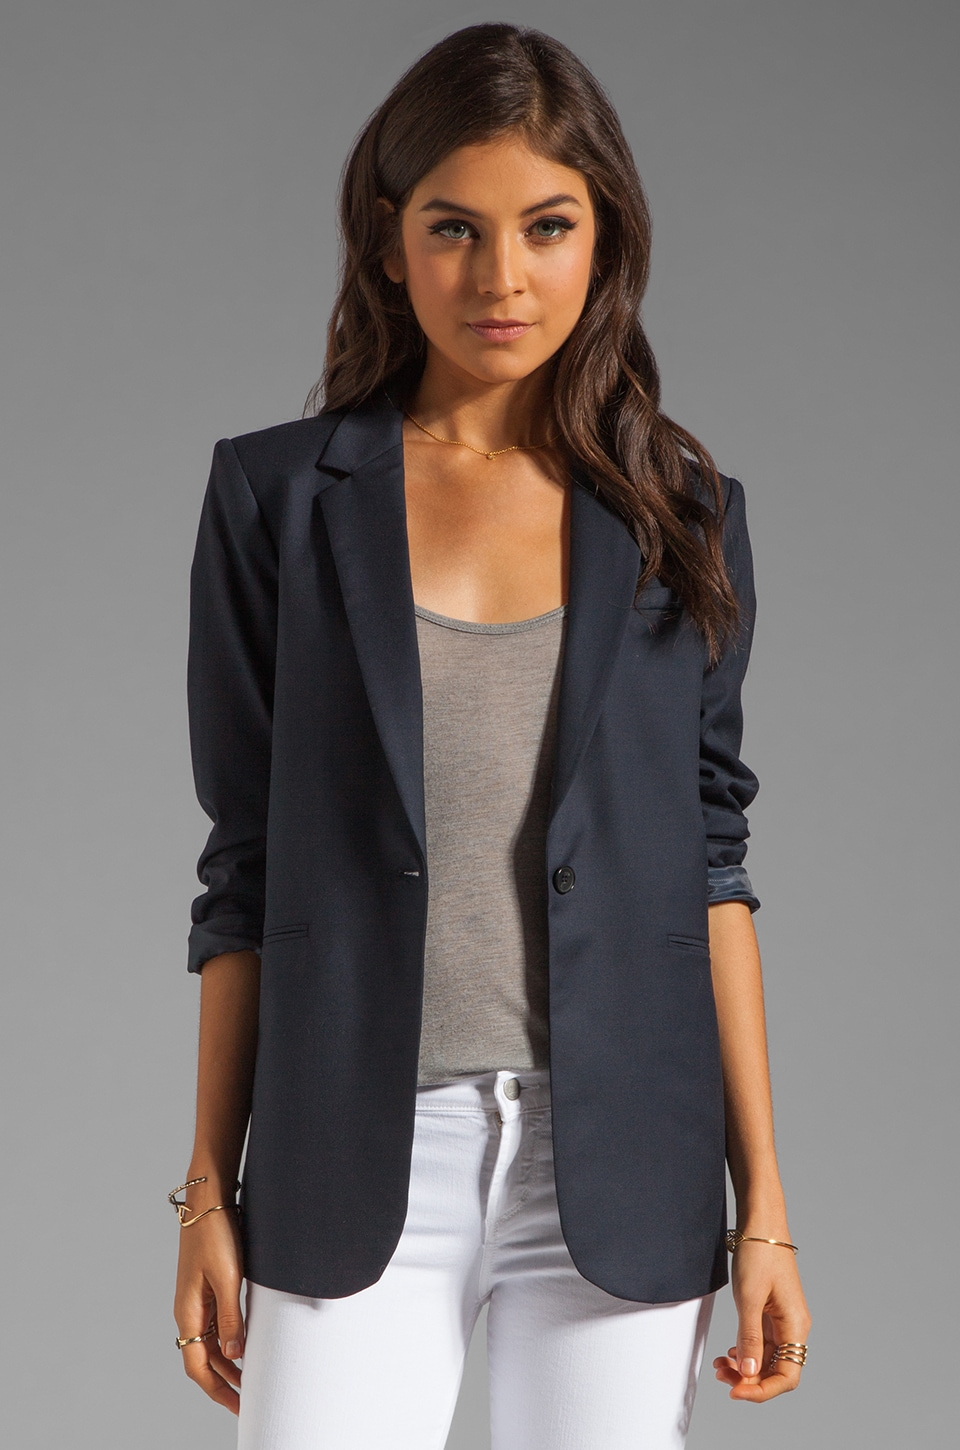 Elizabeth and James Heather Blazer in Classic Navy